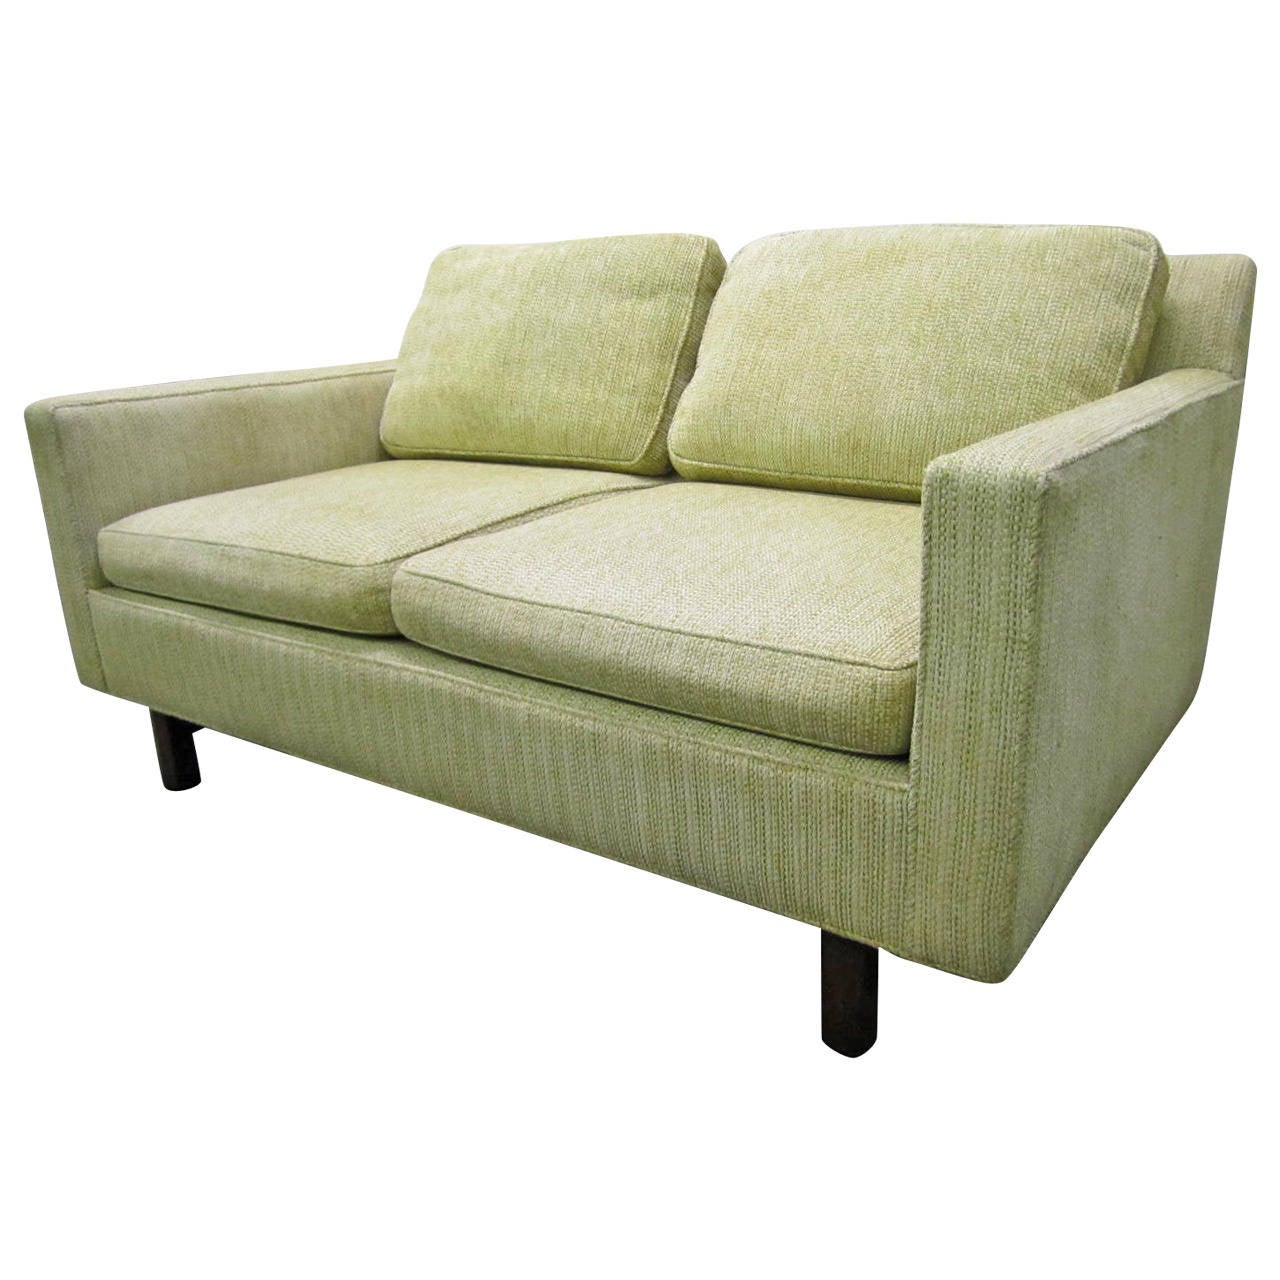 midcentury modern twoseater loveseat sofa by edward wormley for dunbar 1